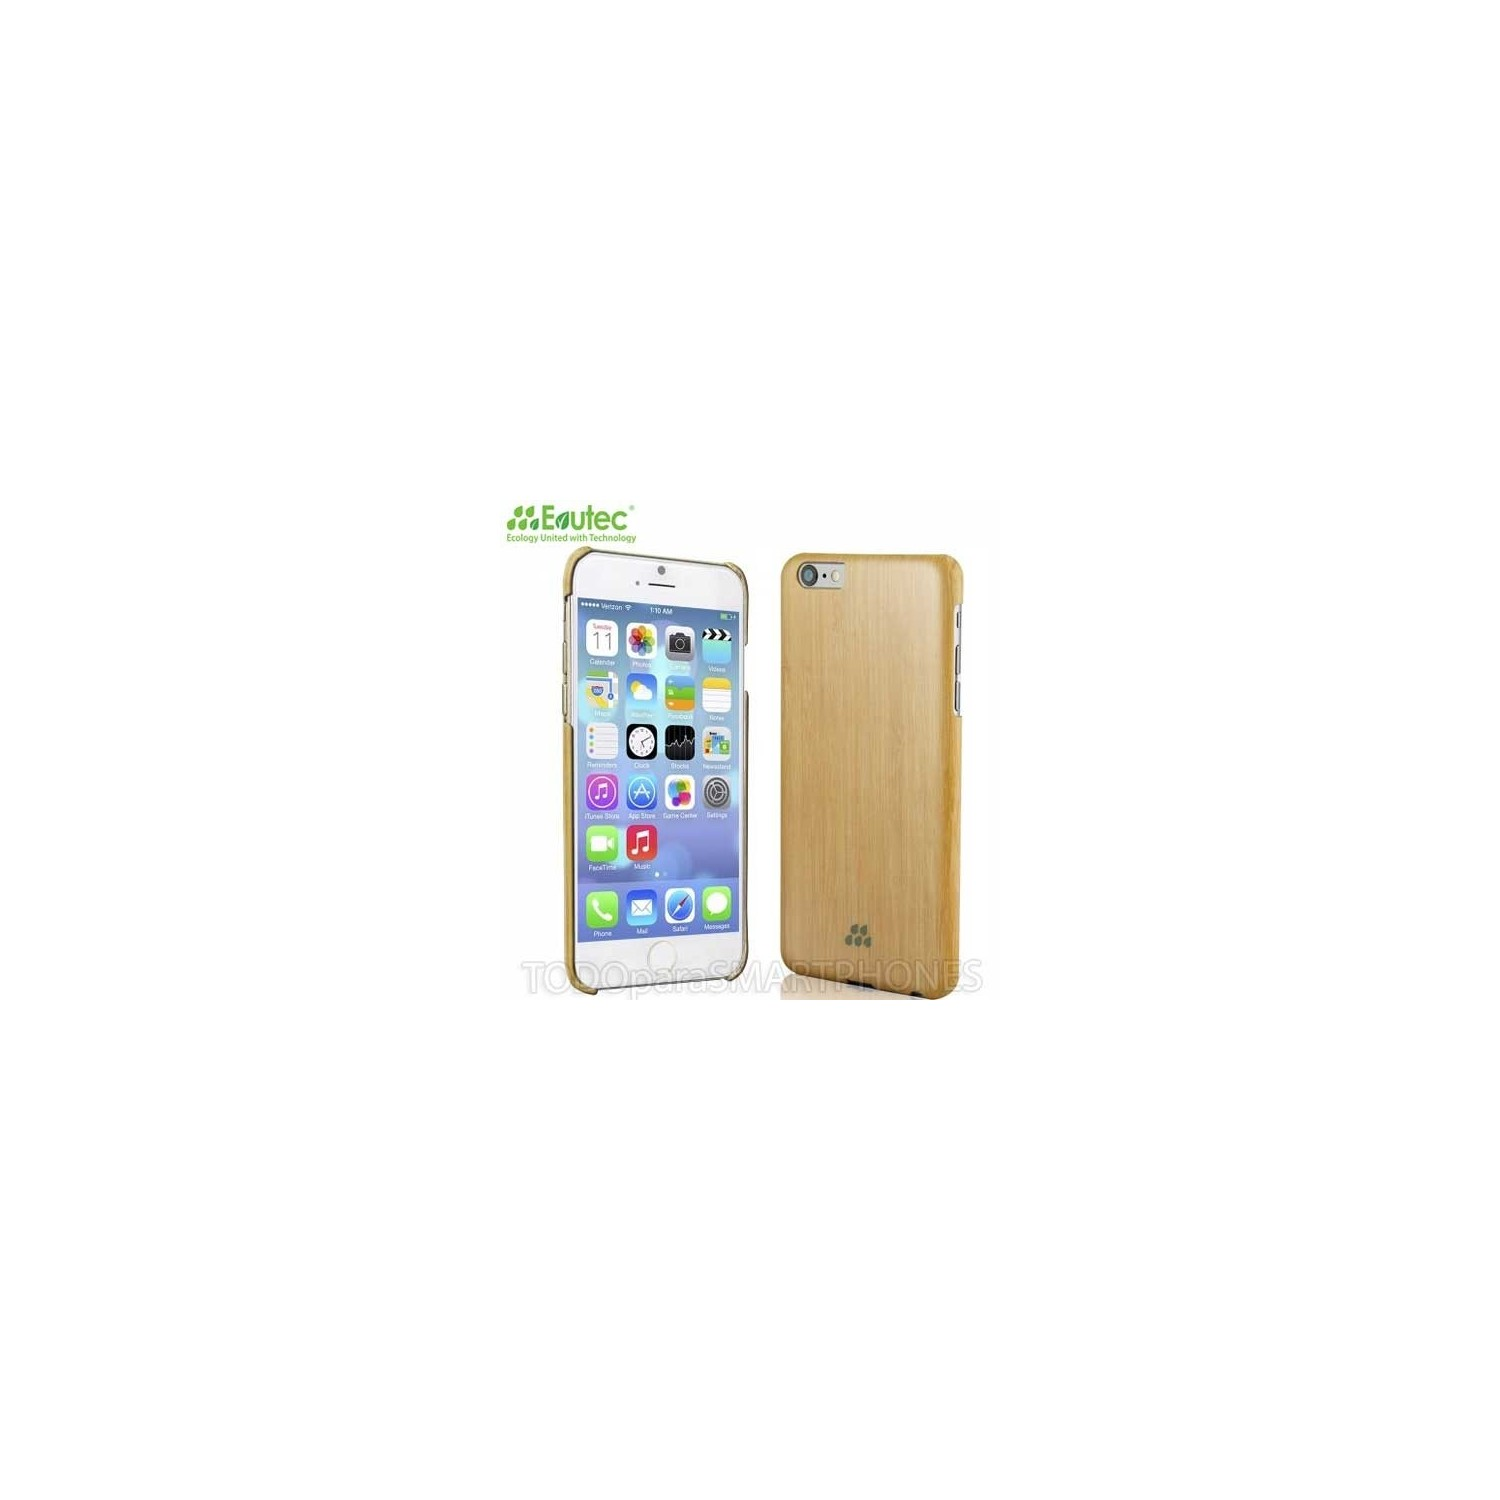 Case - Evutec Wood S for iPhone 6 Plus Bamboo